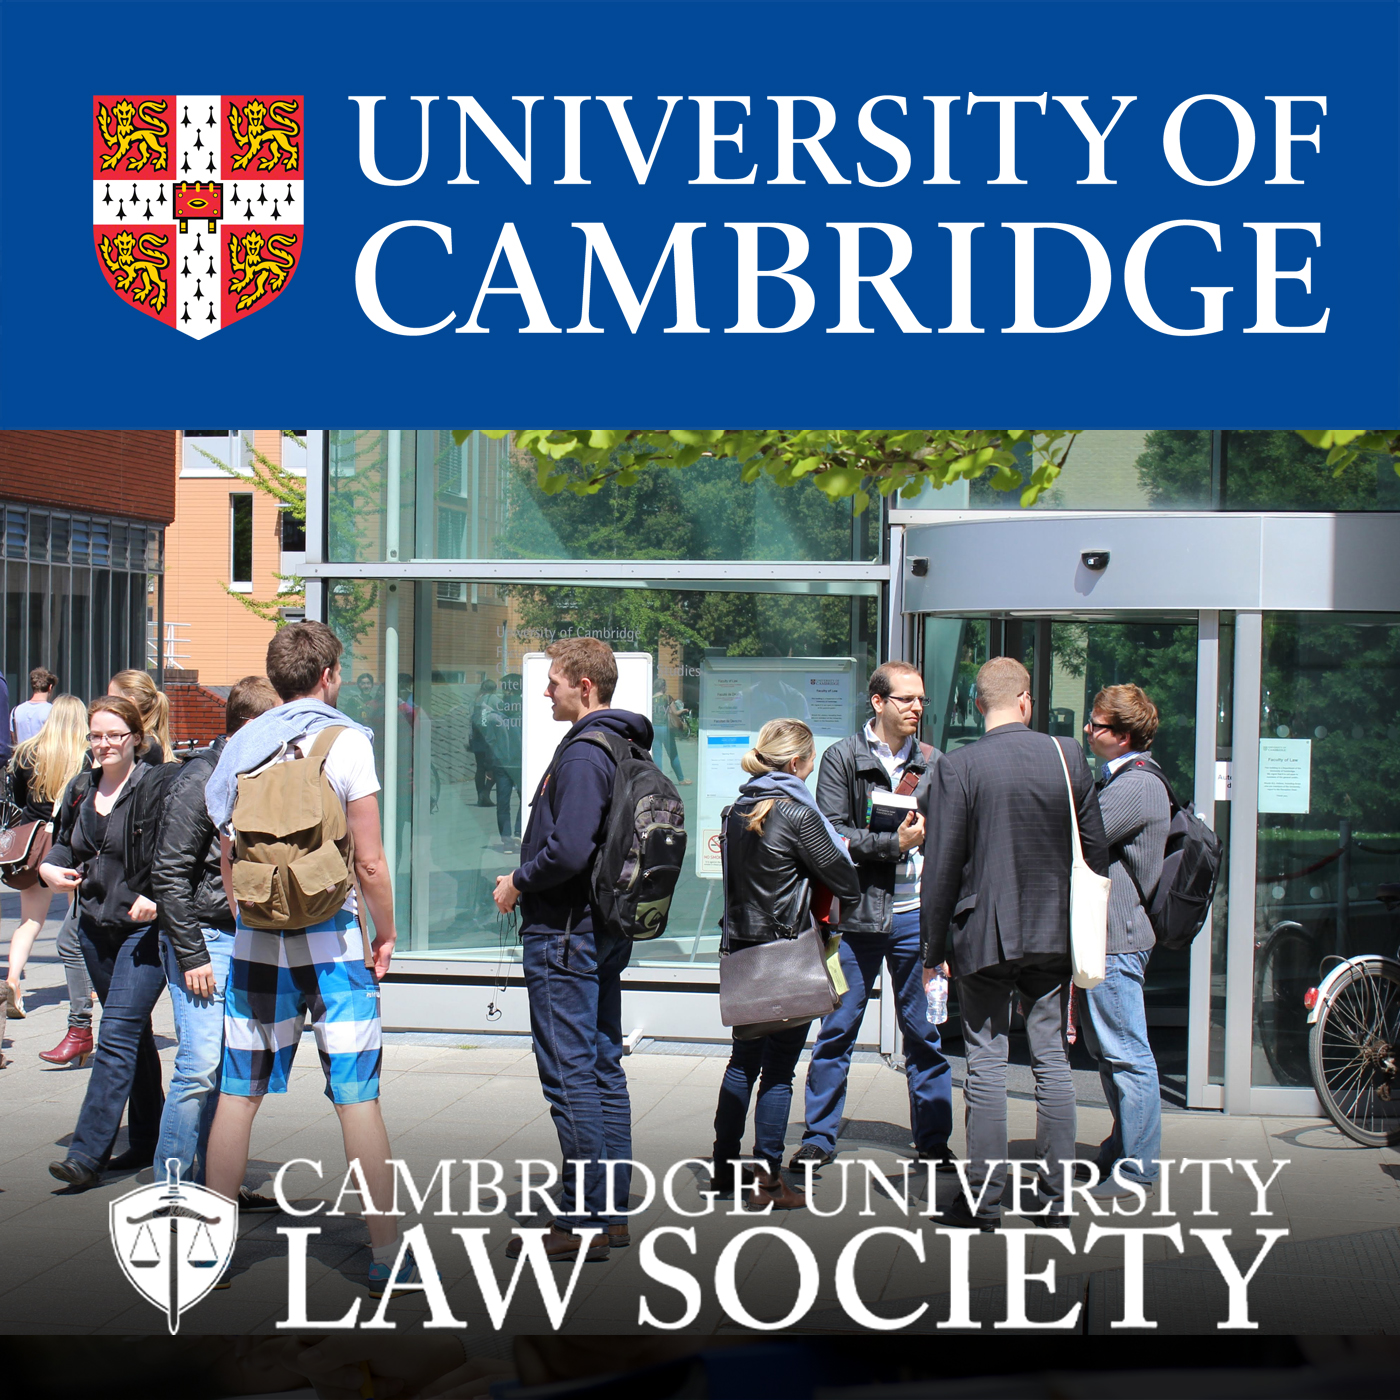 Cambridge University Law Society Speakers's image